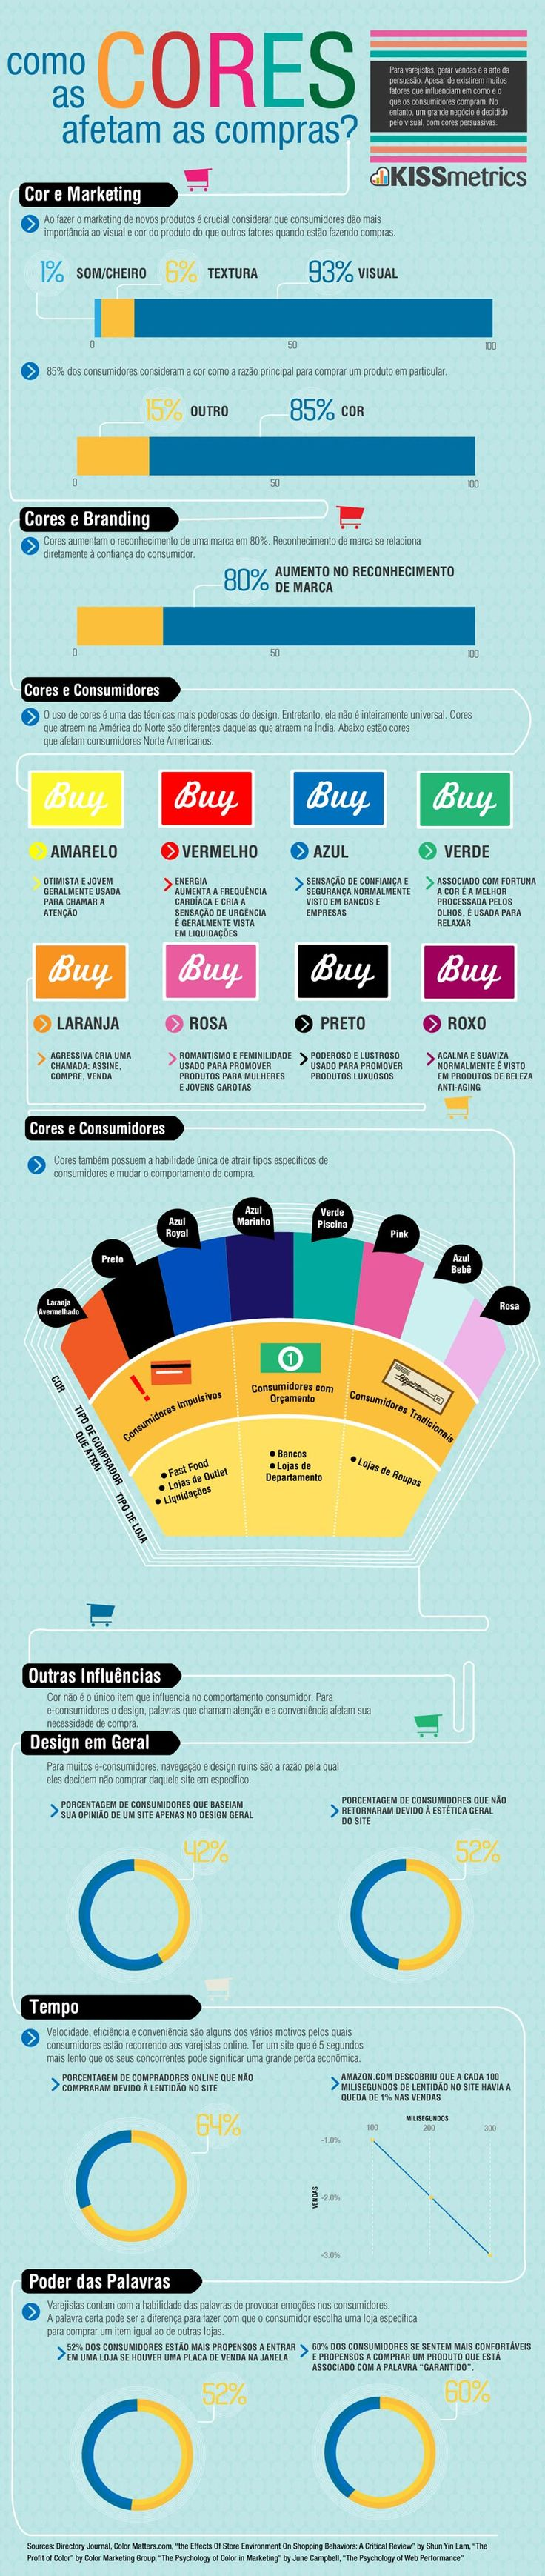 Como as cores afetam as comprar